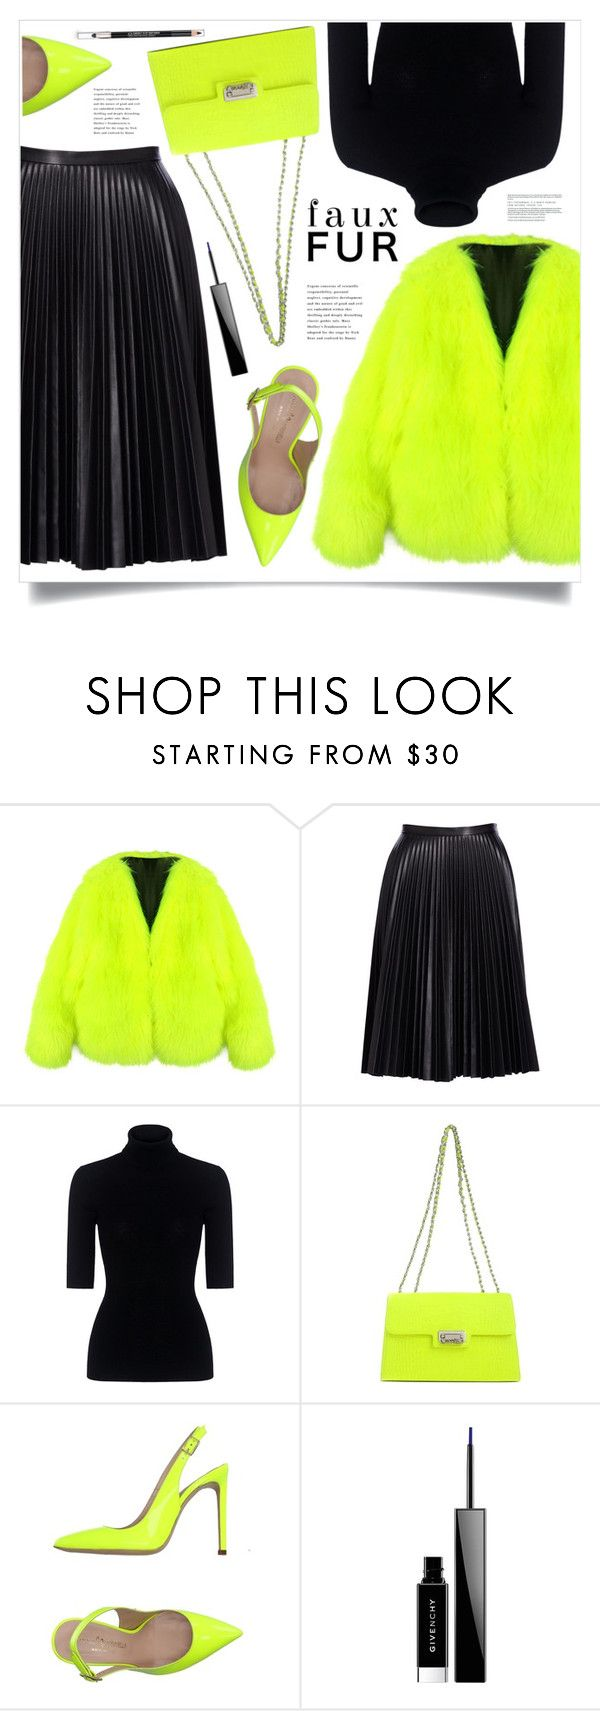 """""""Faux Fur Coats"""" by marina-volaric ❤ liked on Polyvore featuring Chicnova Fashion, Cusp by Neiman Marcus, Theory, Moschino, Marco Barbabella, Givenchy, The Body Shop and fauxfurcoats"""